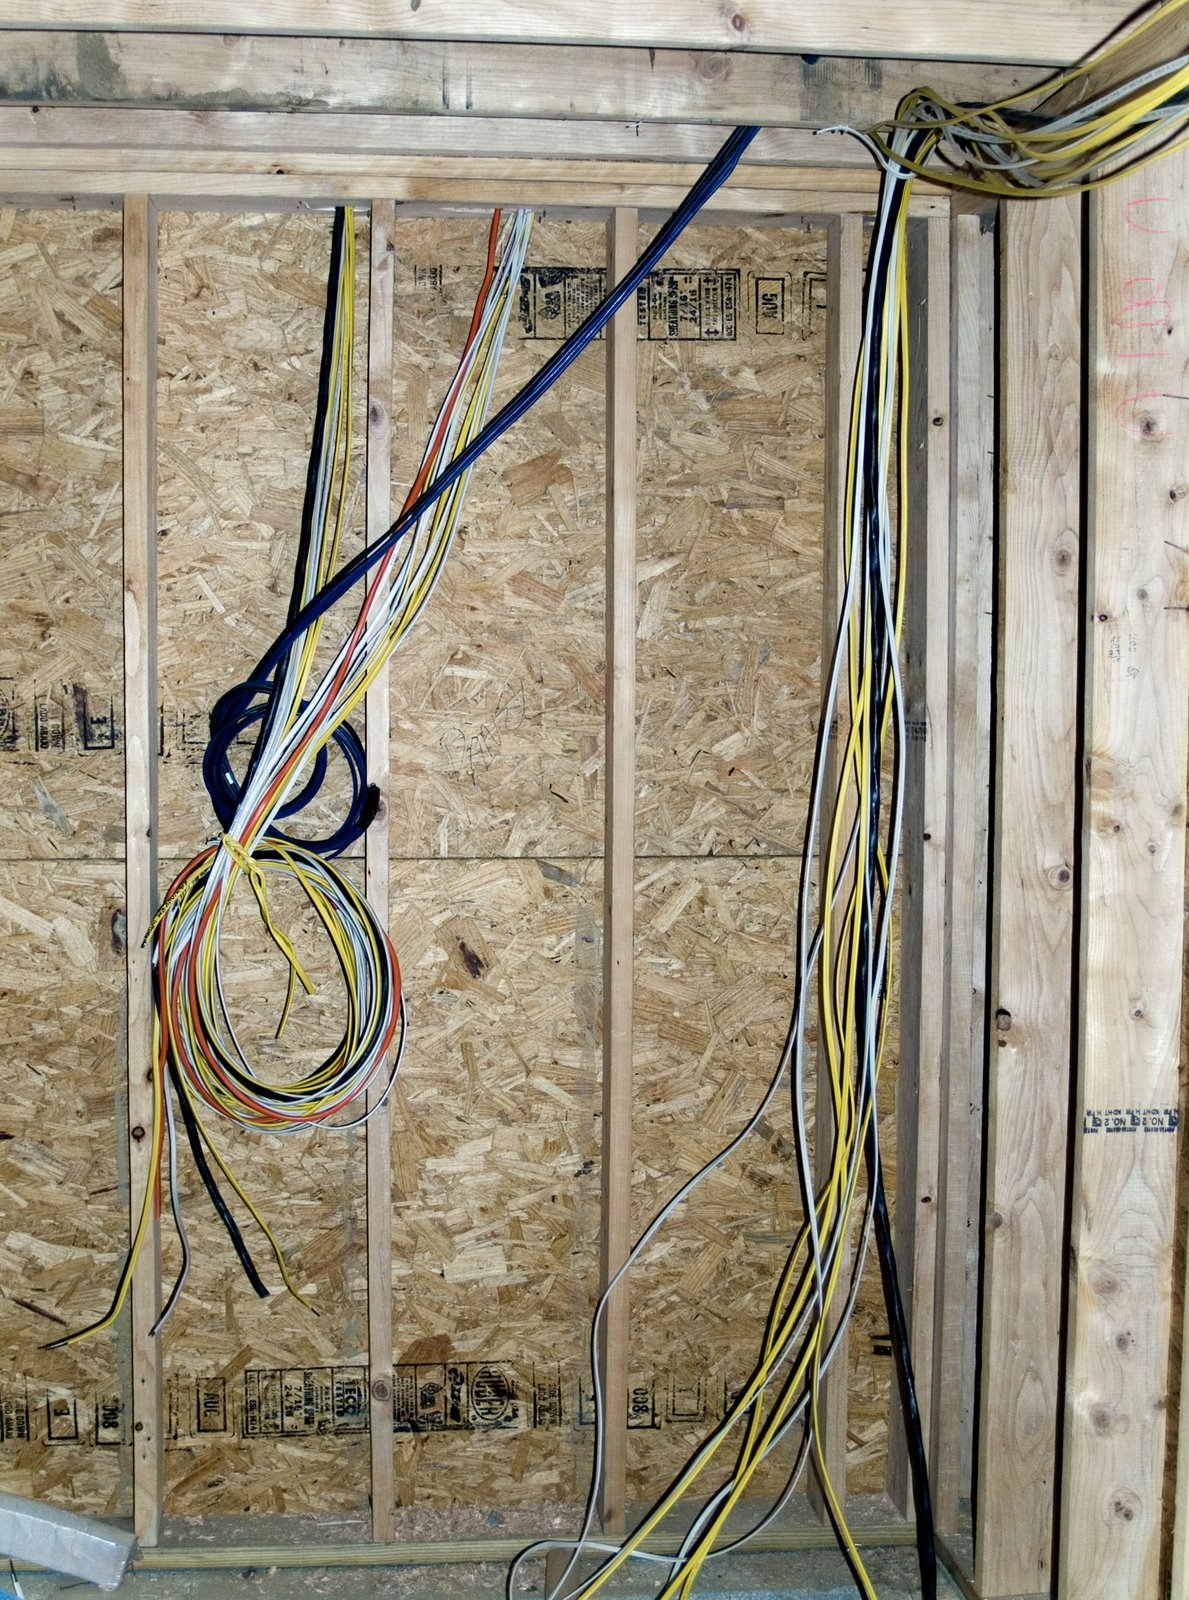 How To Run Electrical Wire In A House Its Electric Wiring Continues Whole Renovation Addition Wires Running Panels The Basement Left And Garage Right Will Be Covered With Drywall This Week See Wad Of Blue White